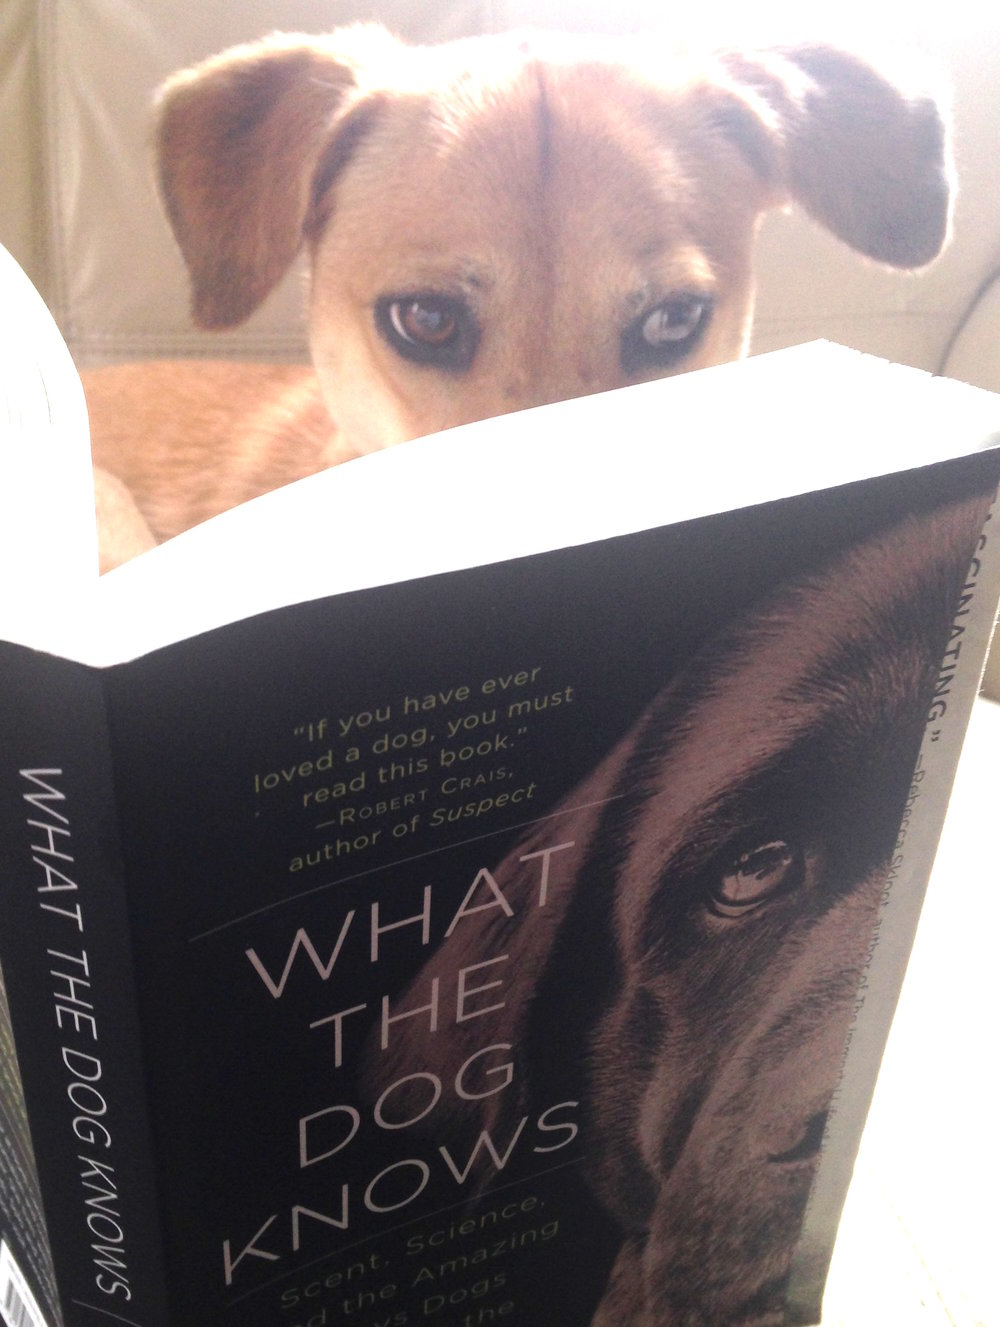 Lucy.  Unstaged photo - caught reading WTDK!